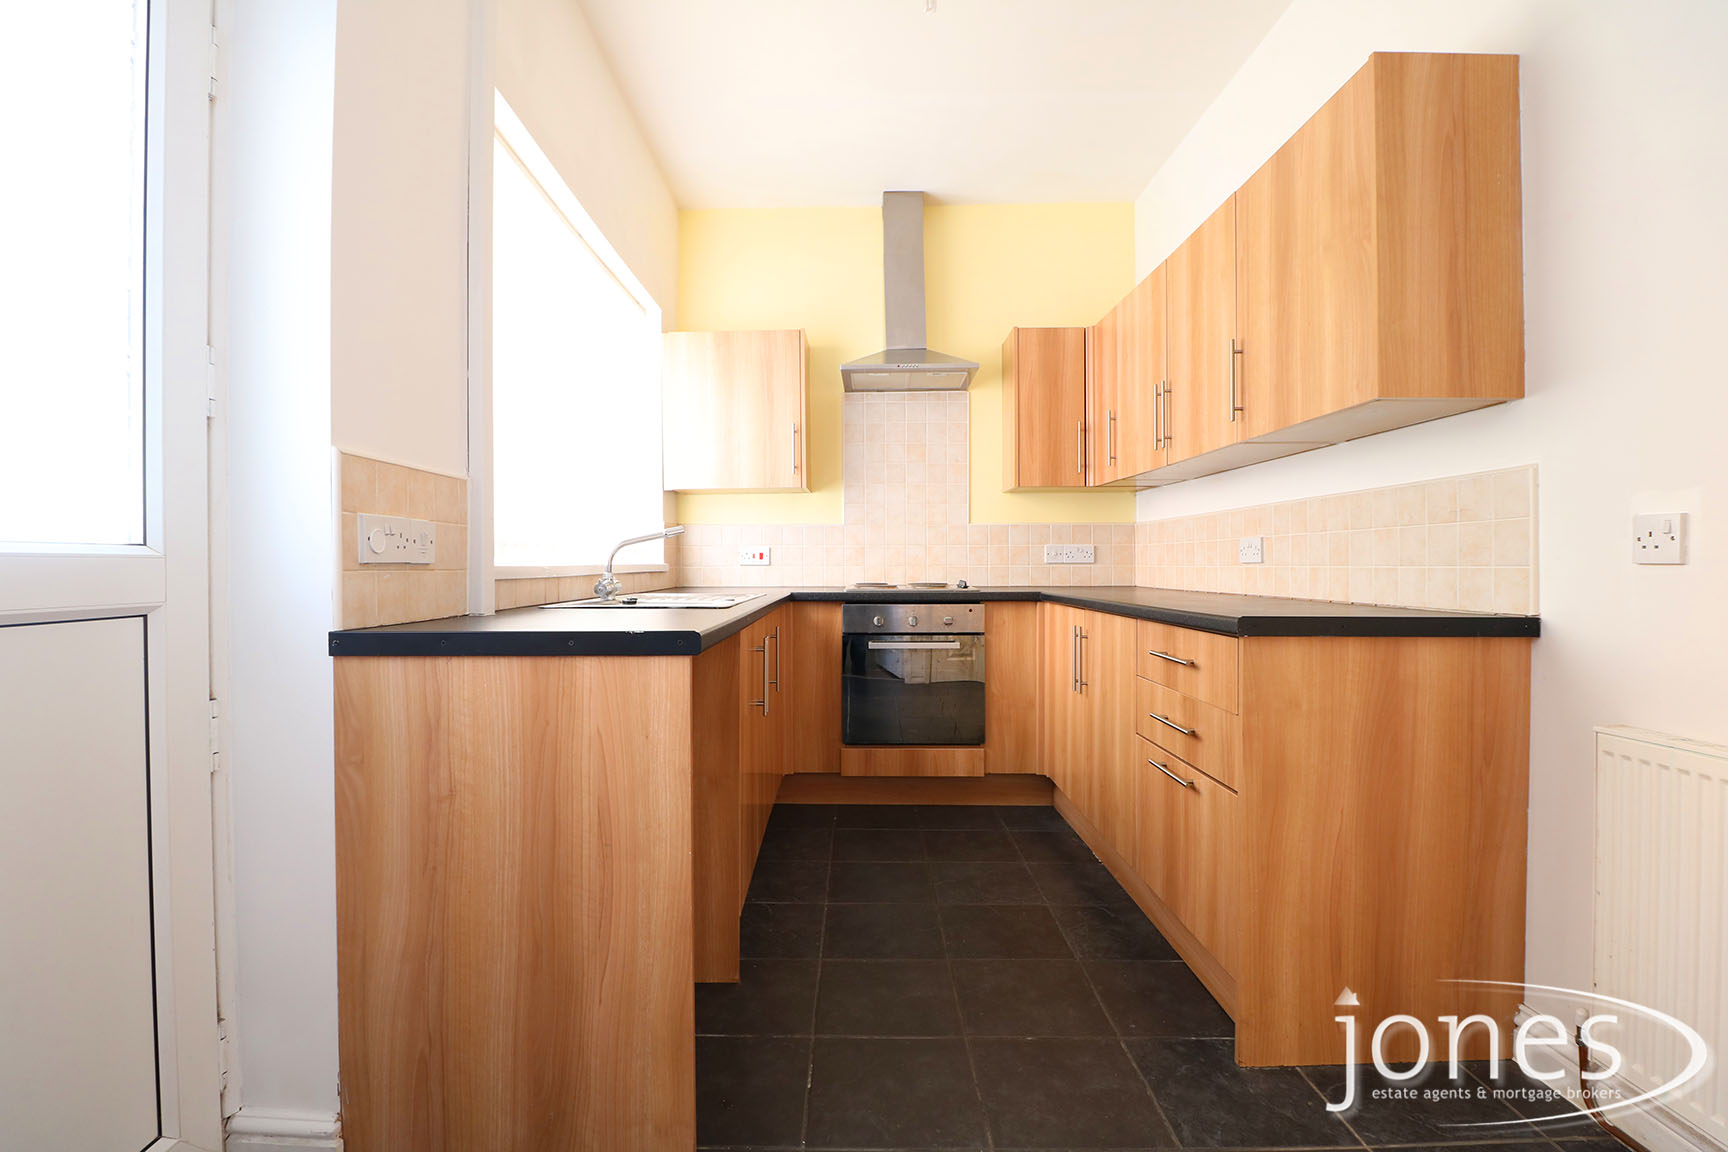 Home for Sale Let - Photo 04 Castlereagh Road,  Stockton on Tees, TS19 0DL